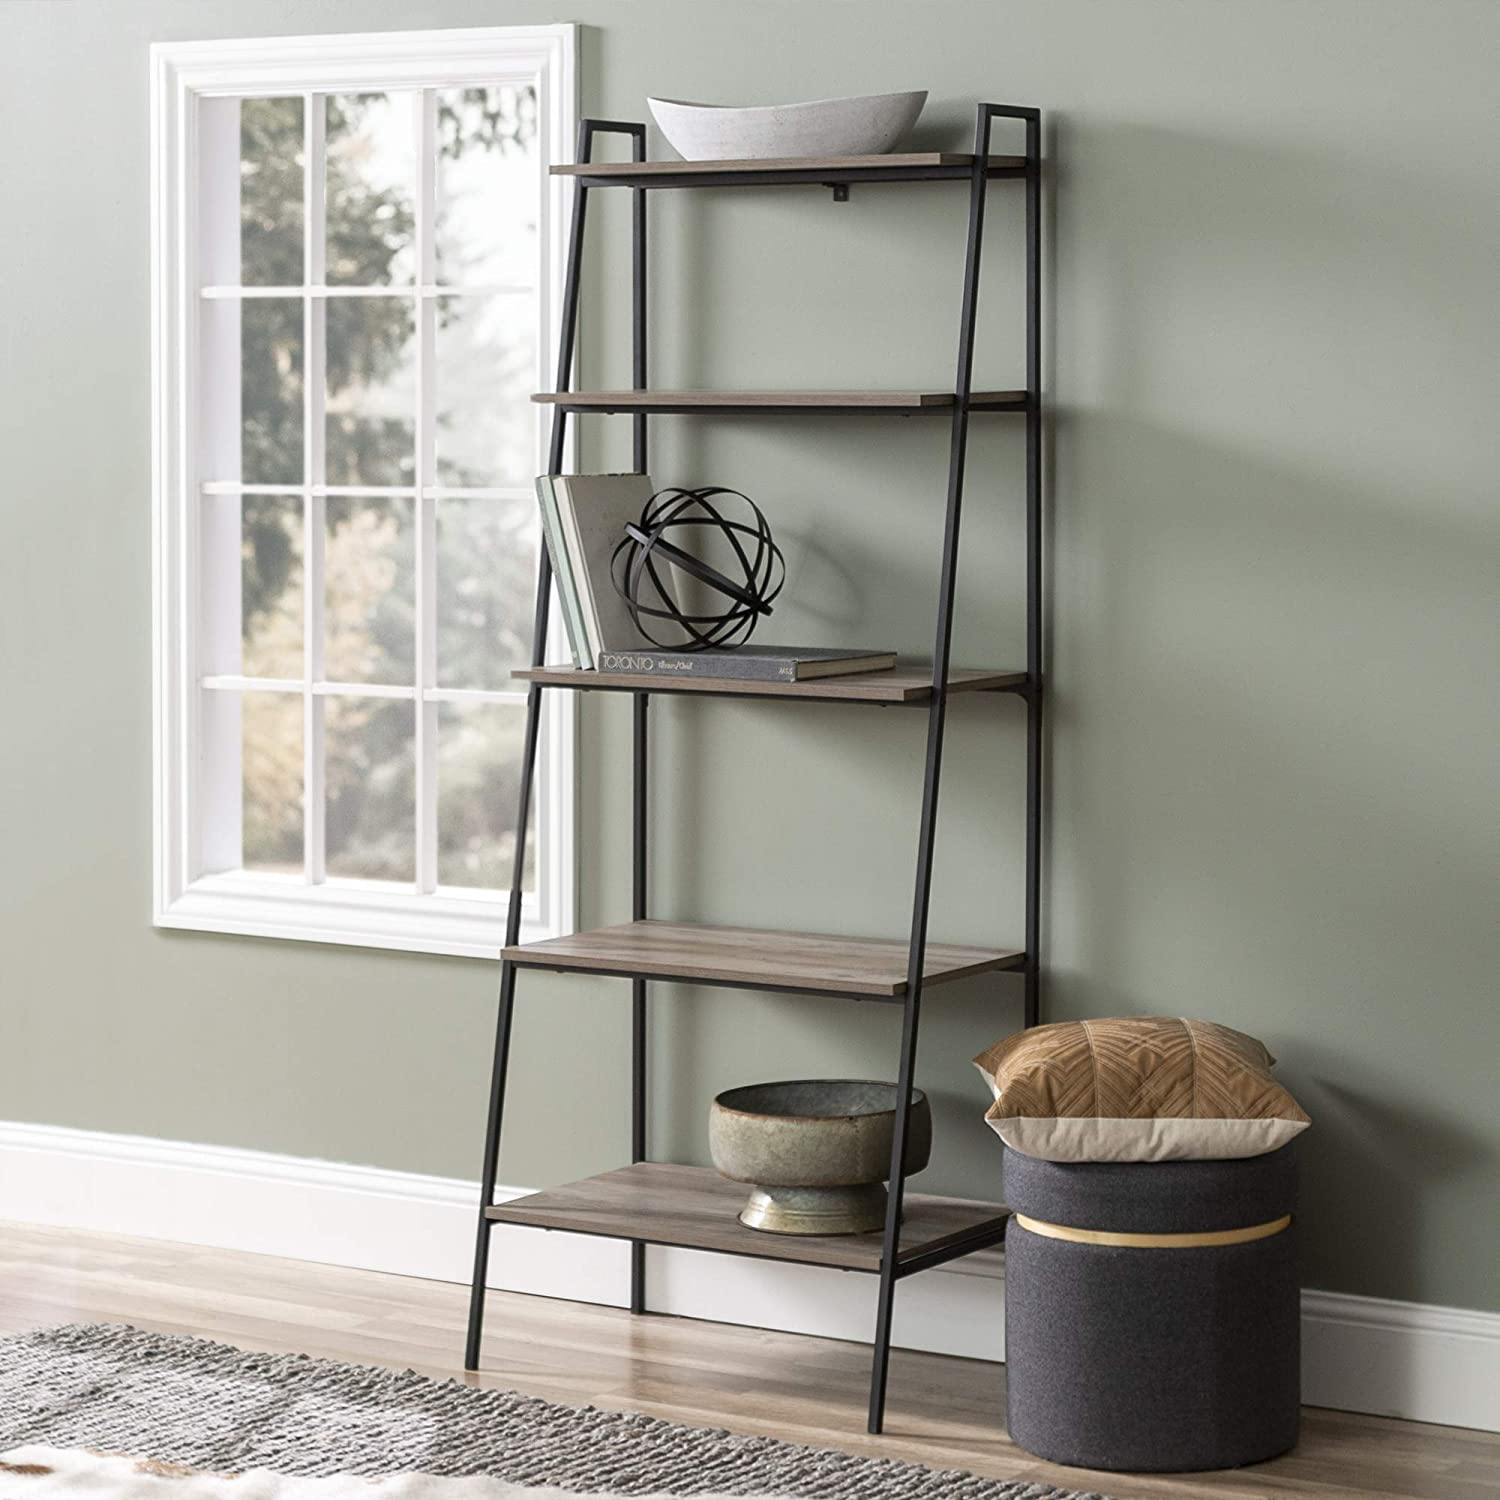 Amazon Com Walker Edison Industrial Metal And Wood Ladder Bookcase Tall Bookshelf Home Office Storage Cabinet 28 L X 18 W X 72 H Grey Wash Furniture Decor